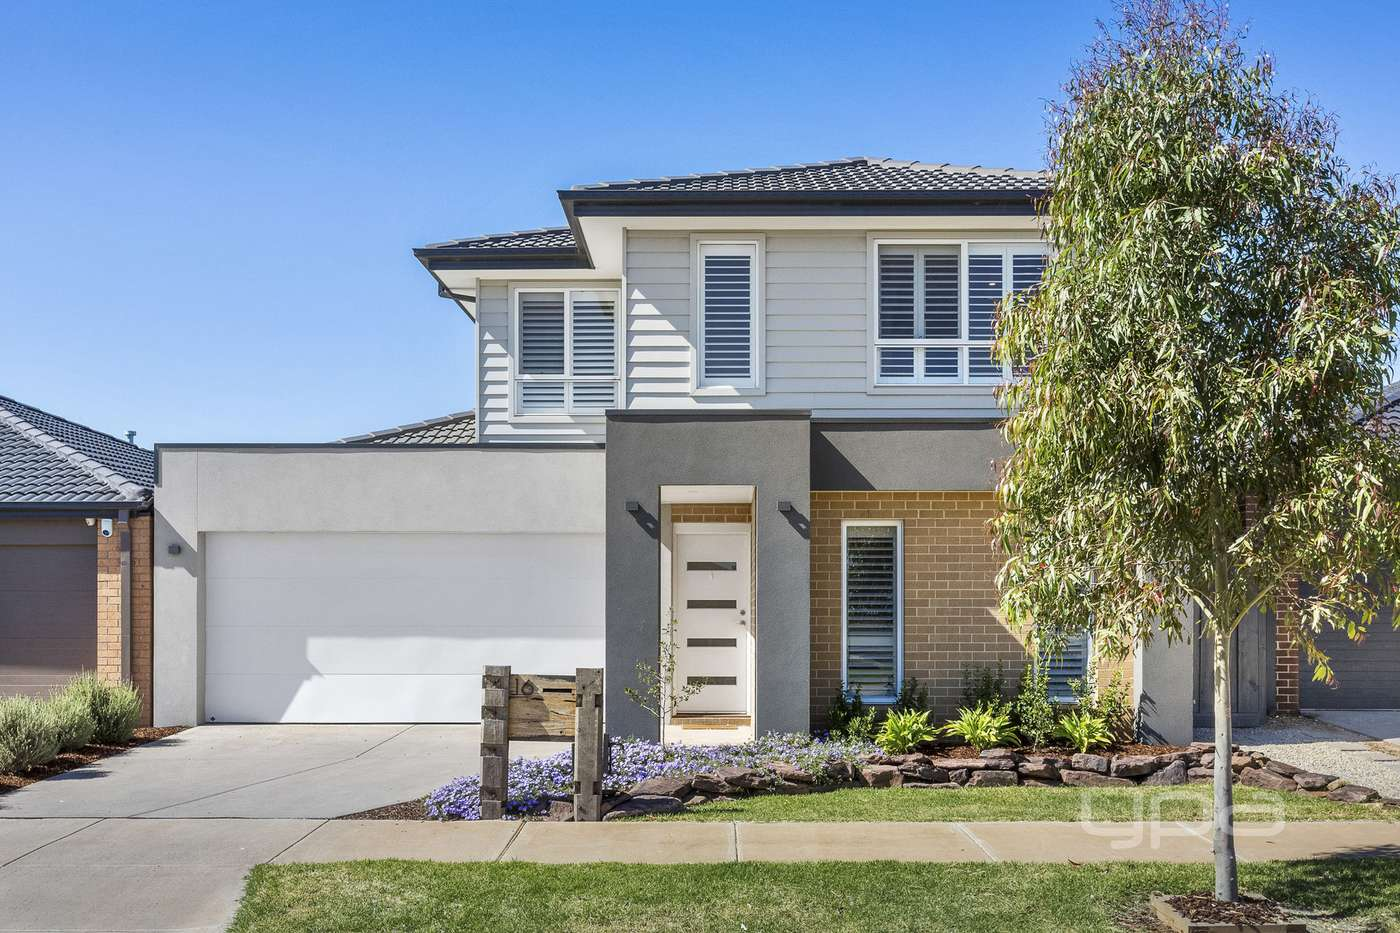 Main view of Homely house listing, 16 Dempsey Avenue, Truganina, VIC 3029